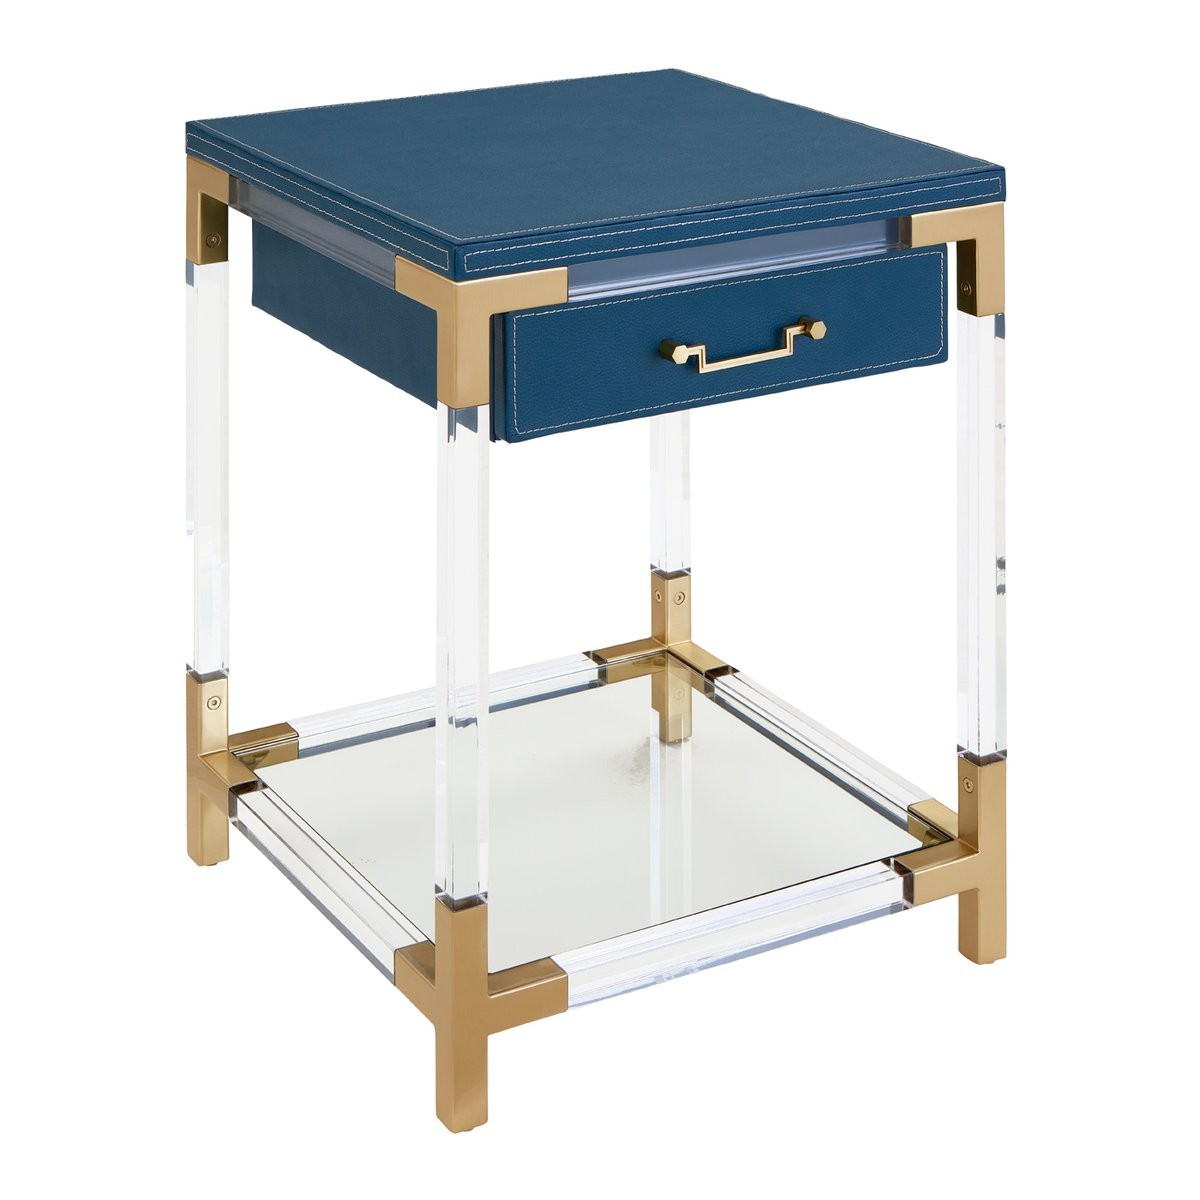 Jonathan Adler I Jacques 2 Tier Table With Drawer